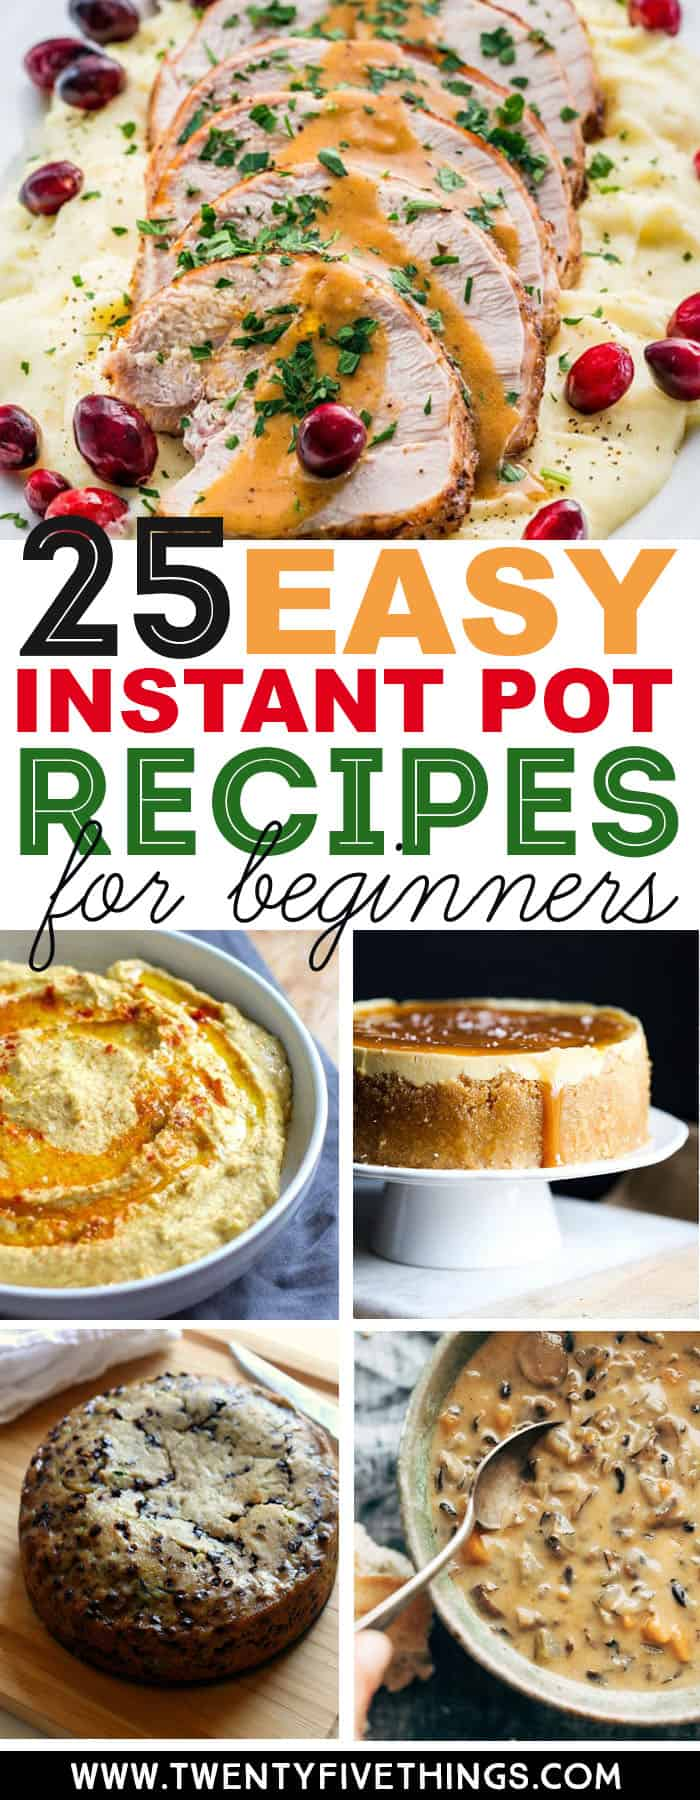 Get started with your new Instant Pot with these 25 no-fail recipes that are perfect for beginners. #InstantPotRecipes